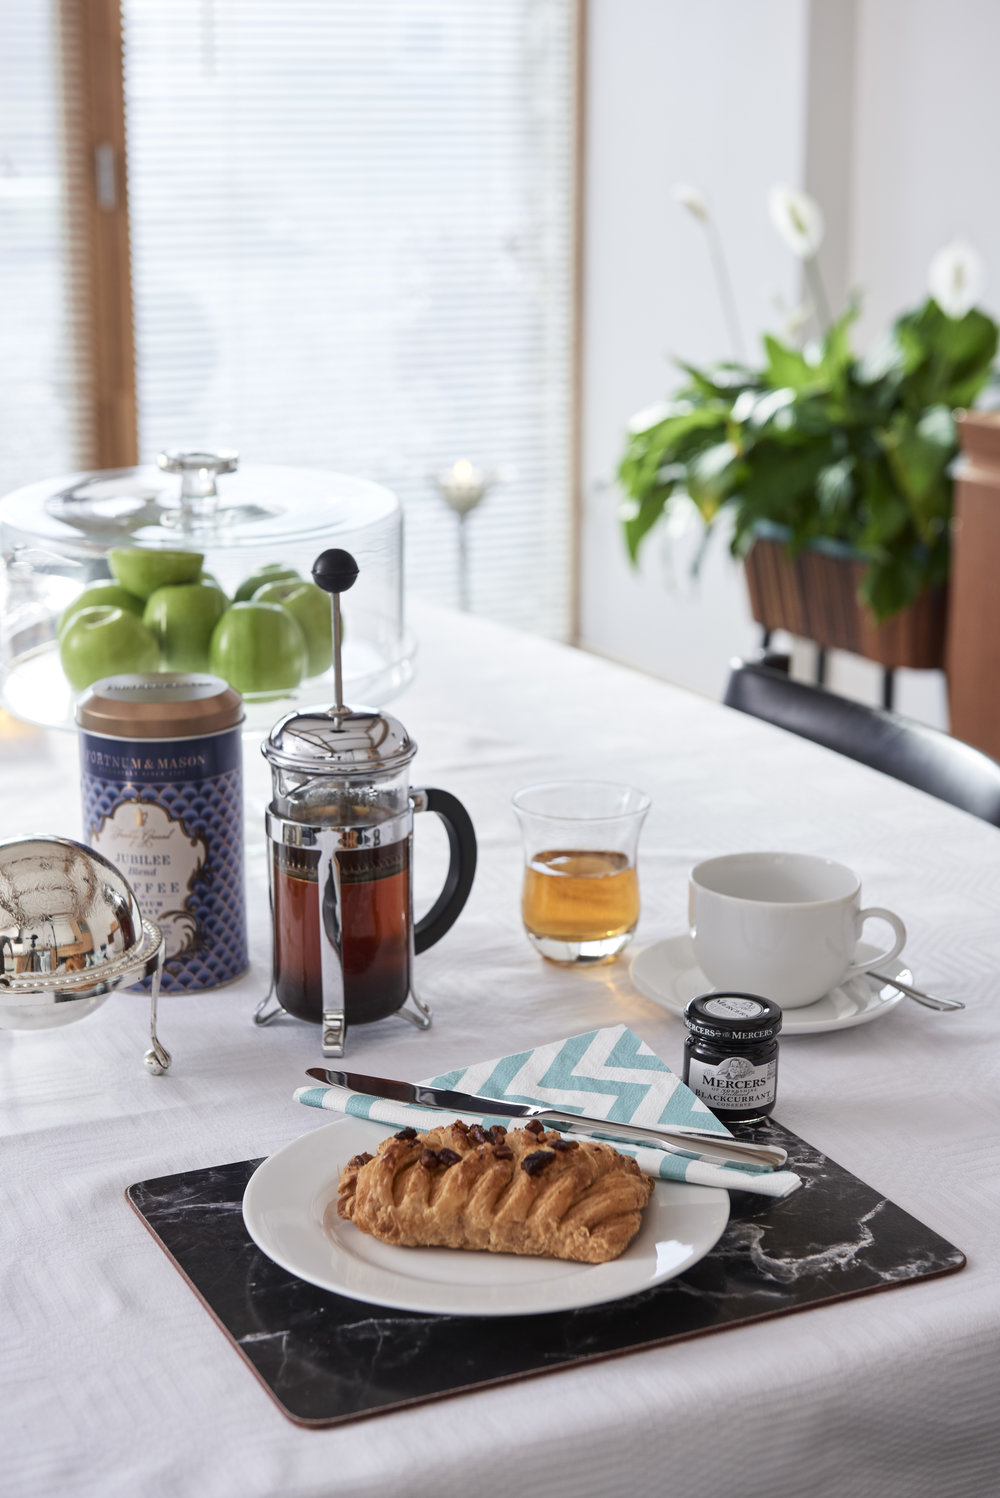 Enjoy a relaxing breakfast or celebrate in style